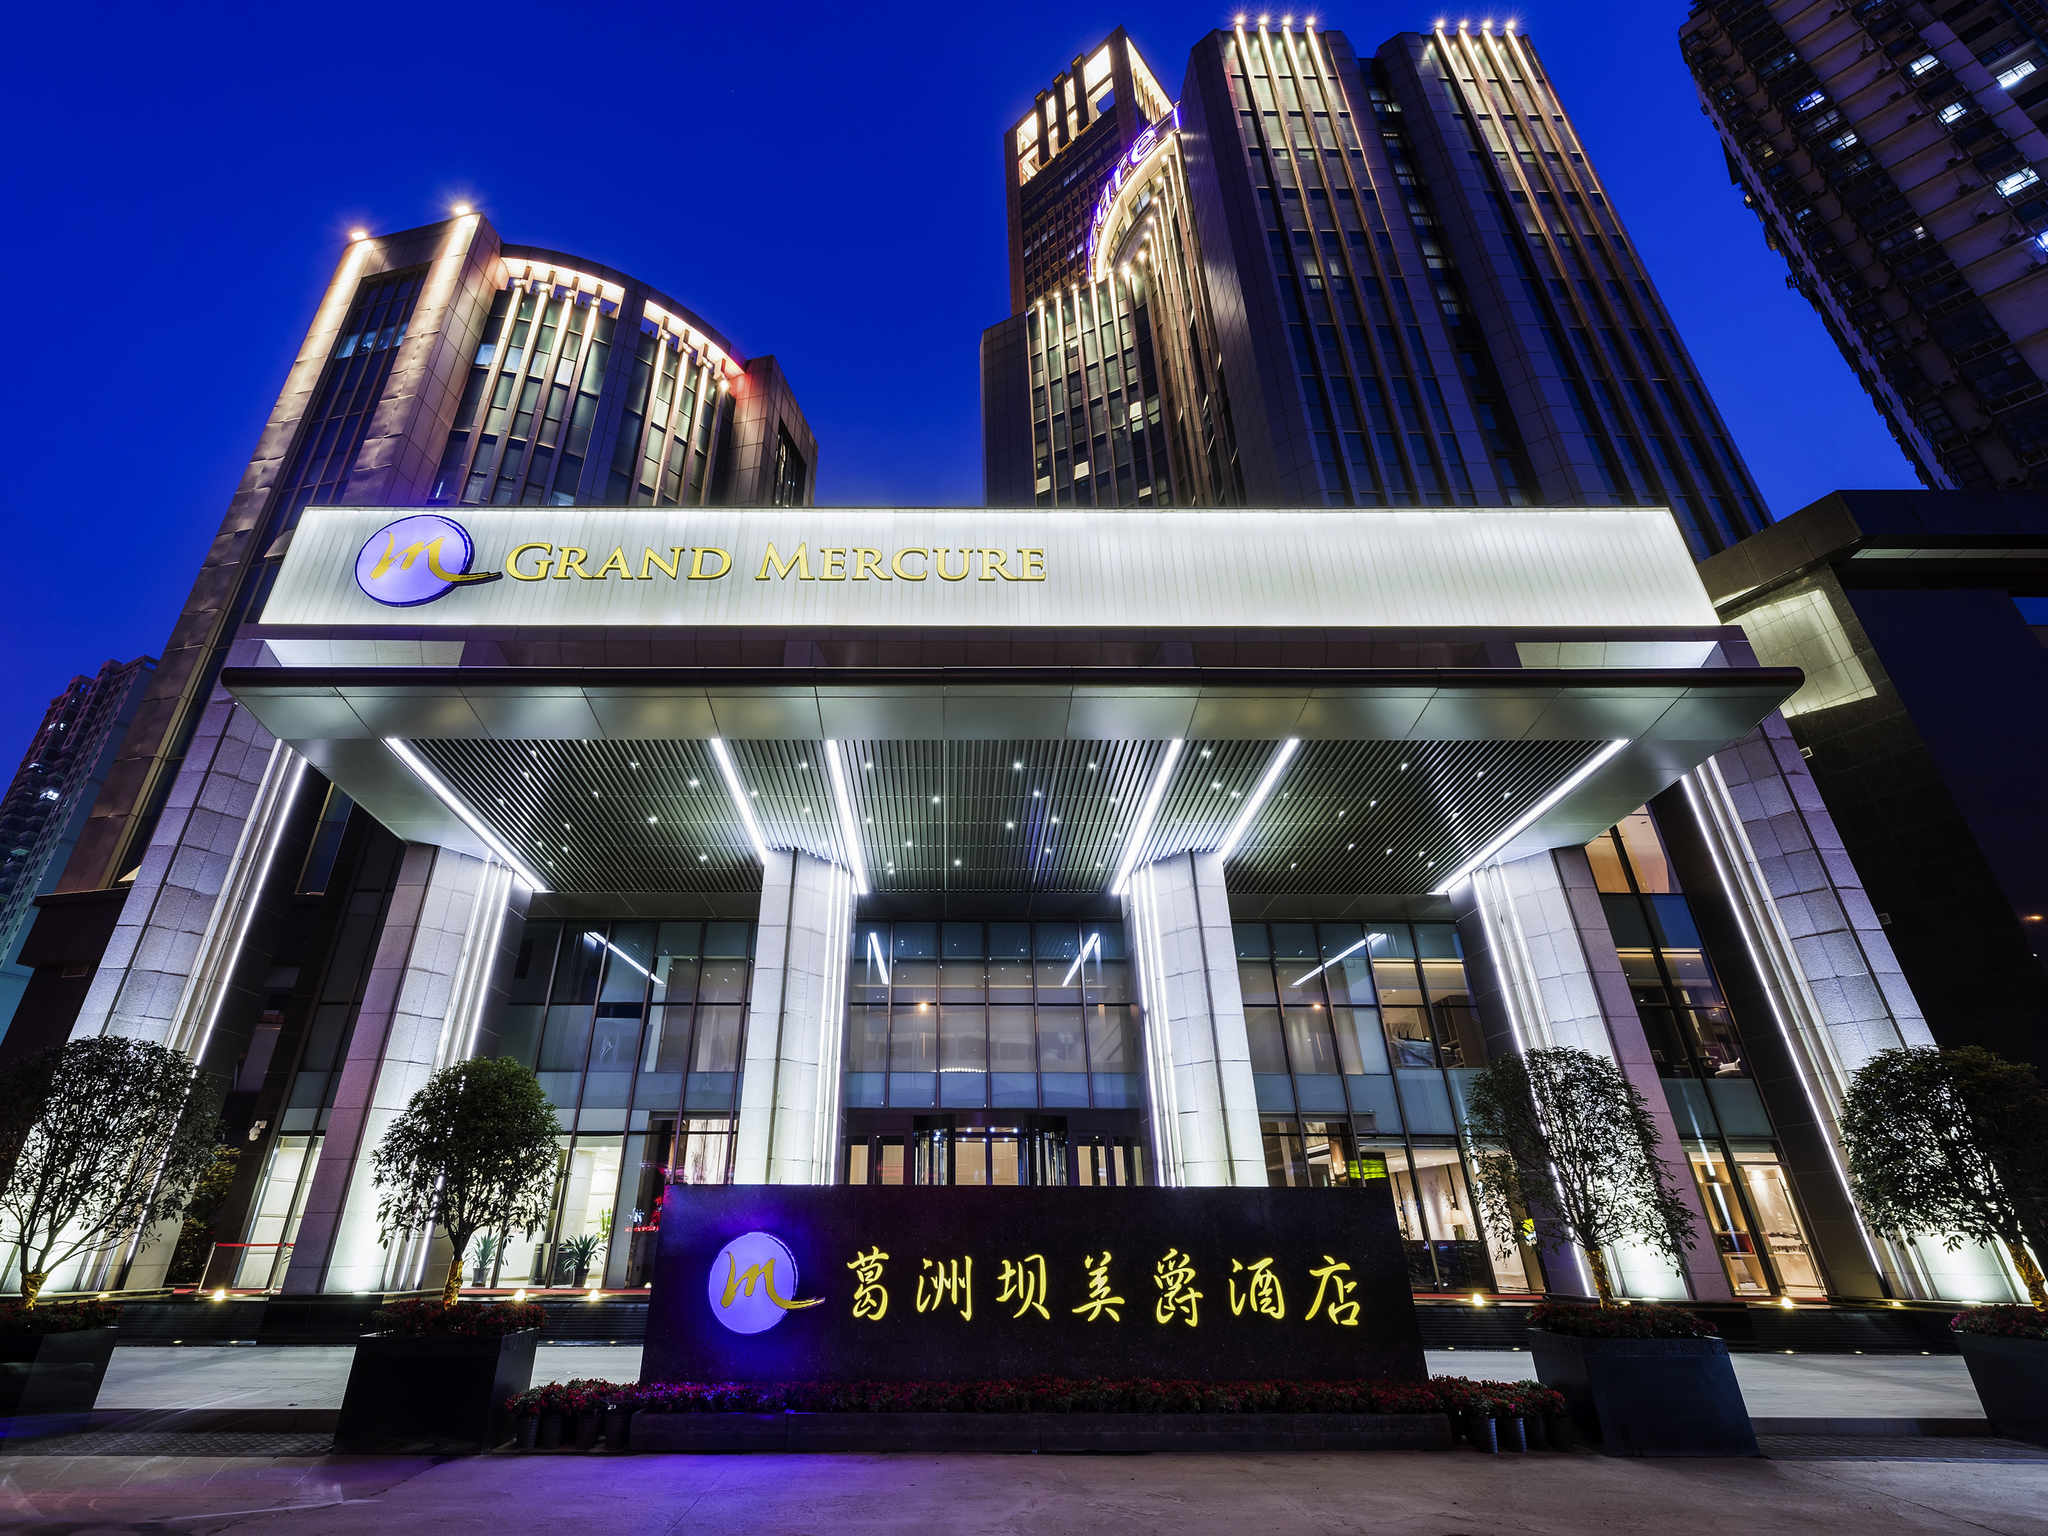 فندق - Grand Mercure Wuhan Qiaokou